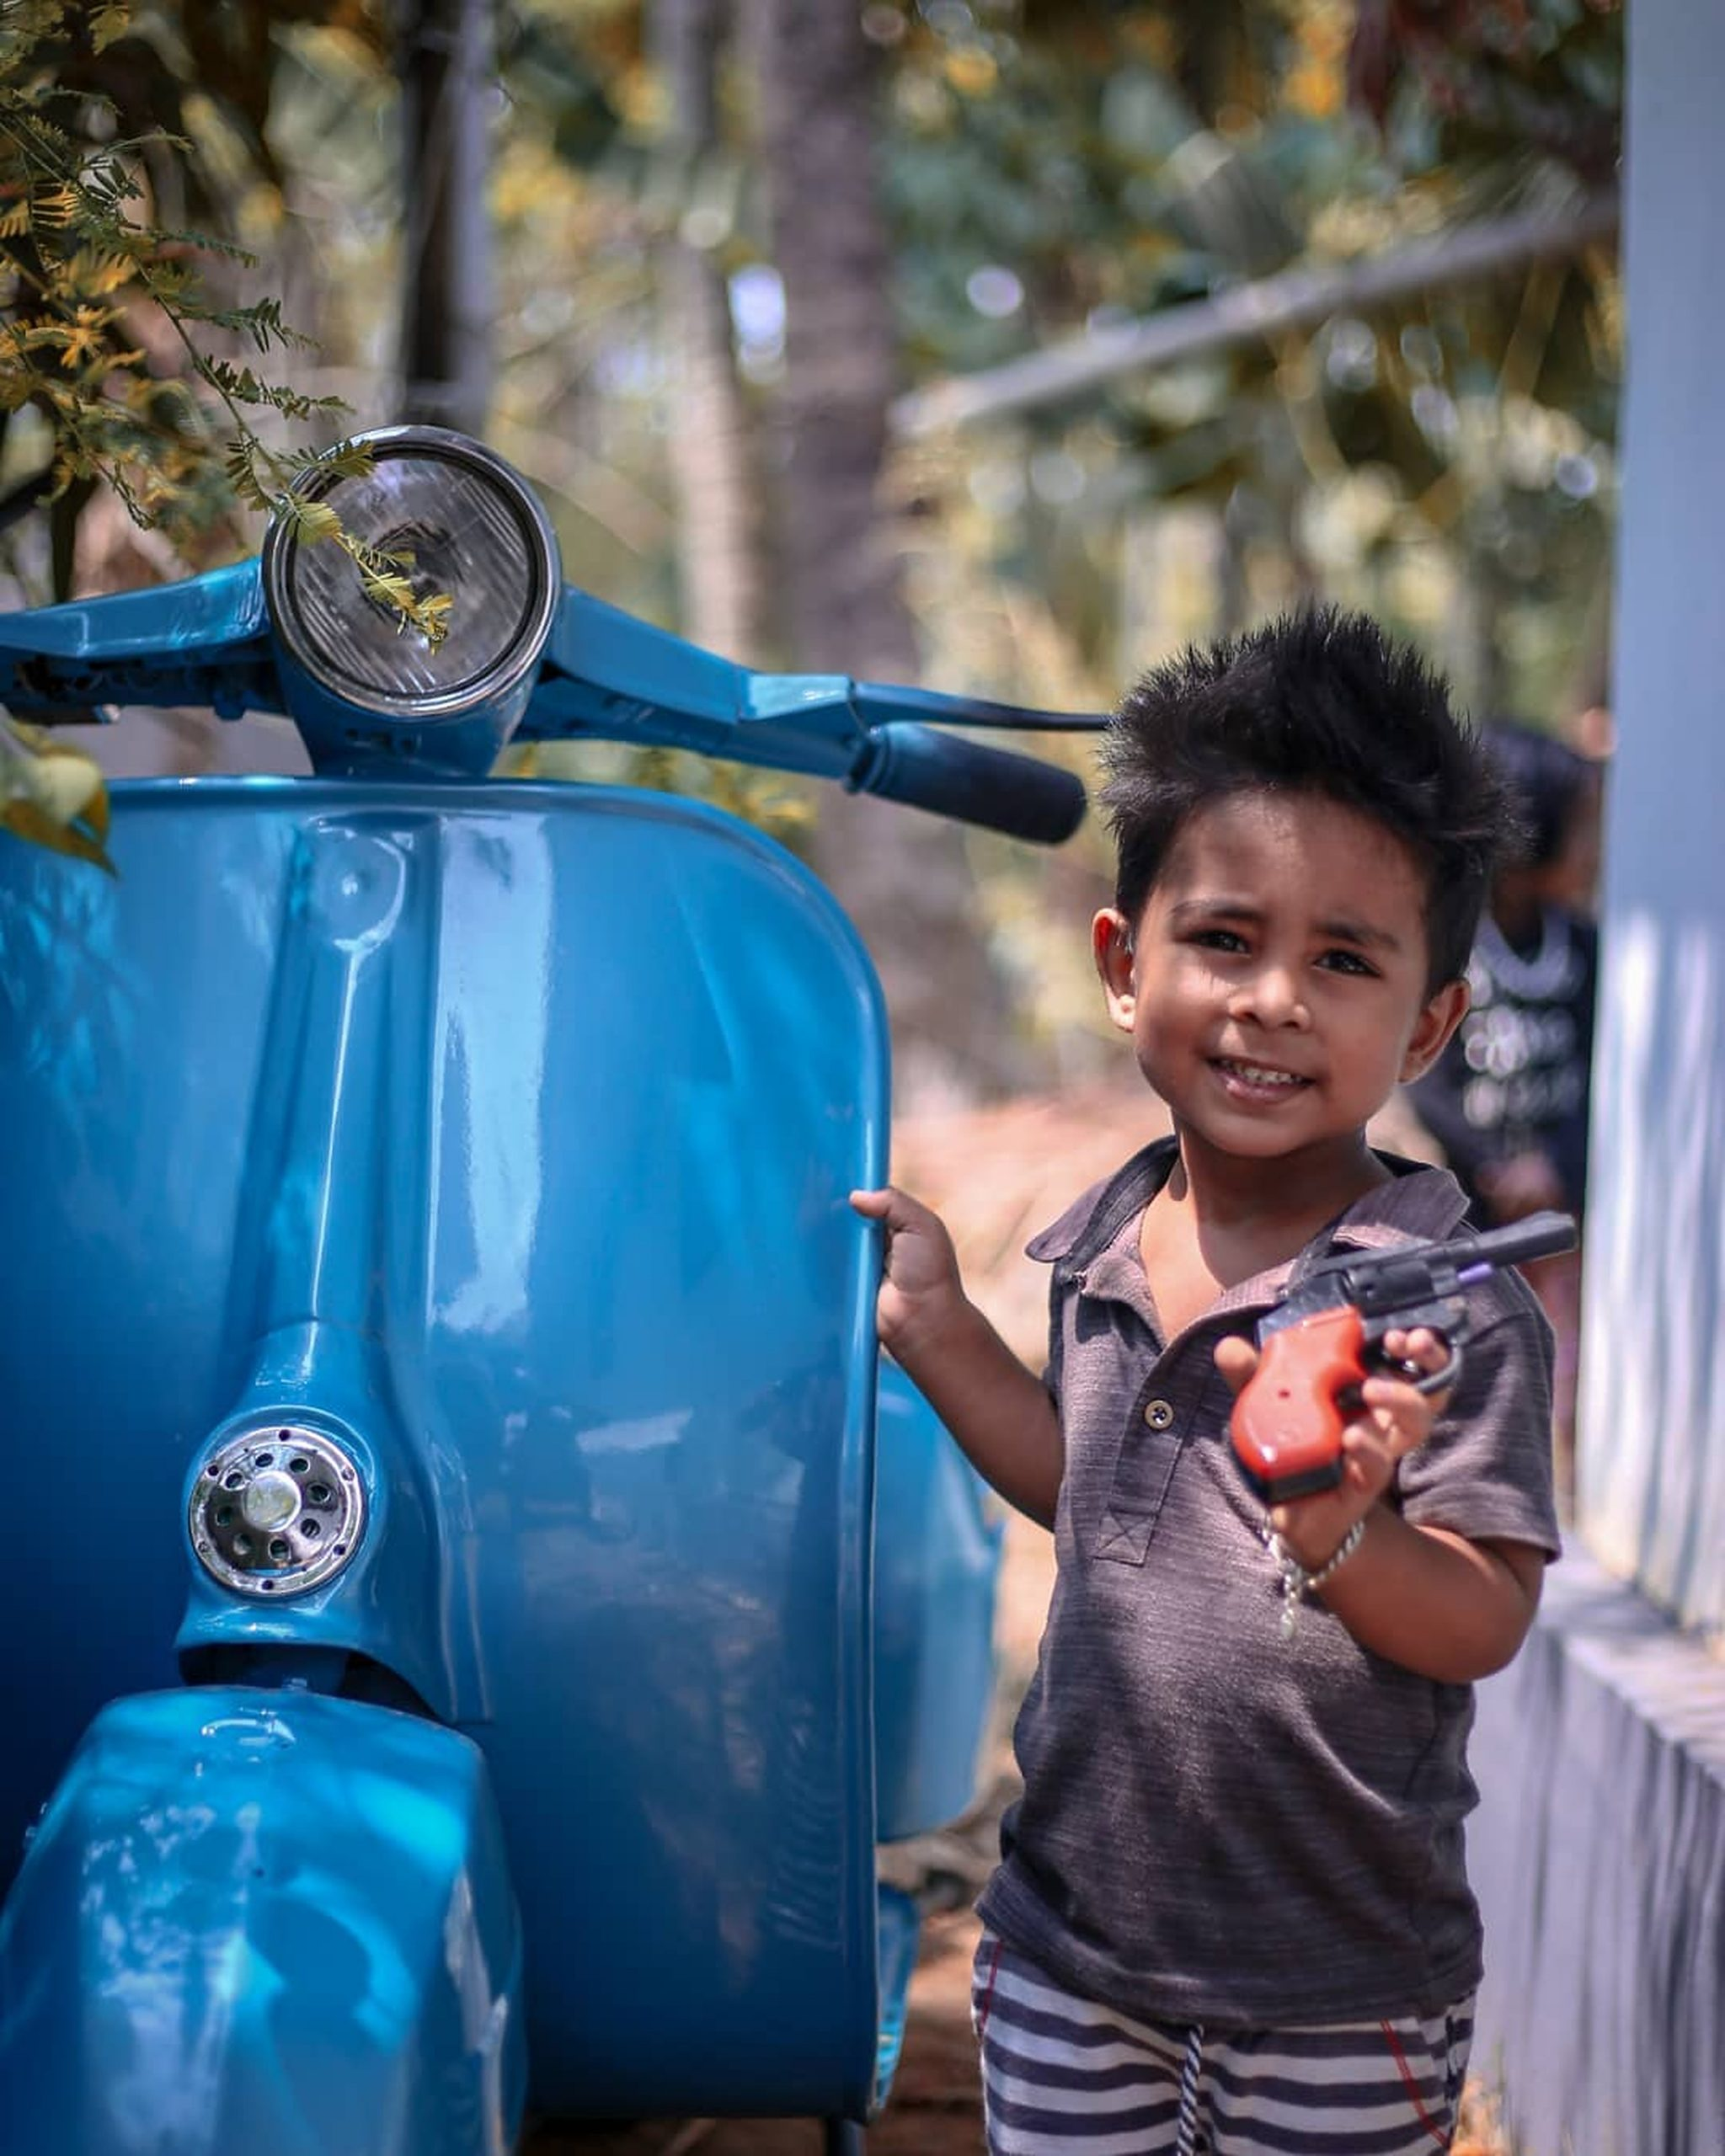 A kid with Blue Scooter